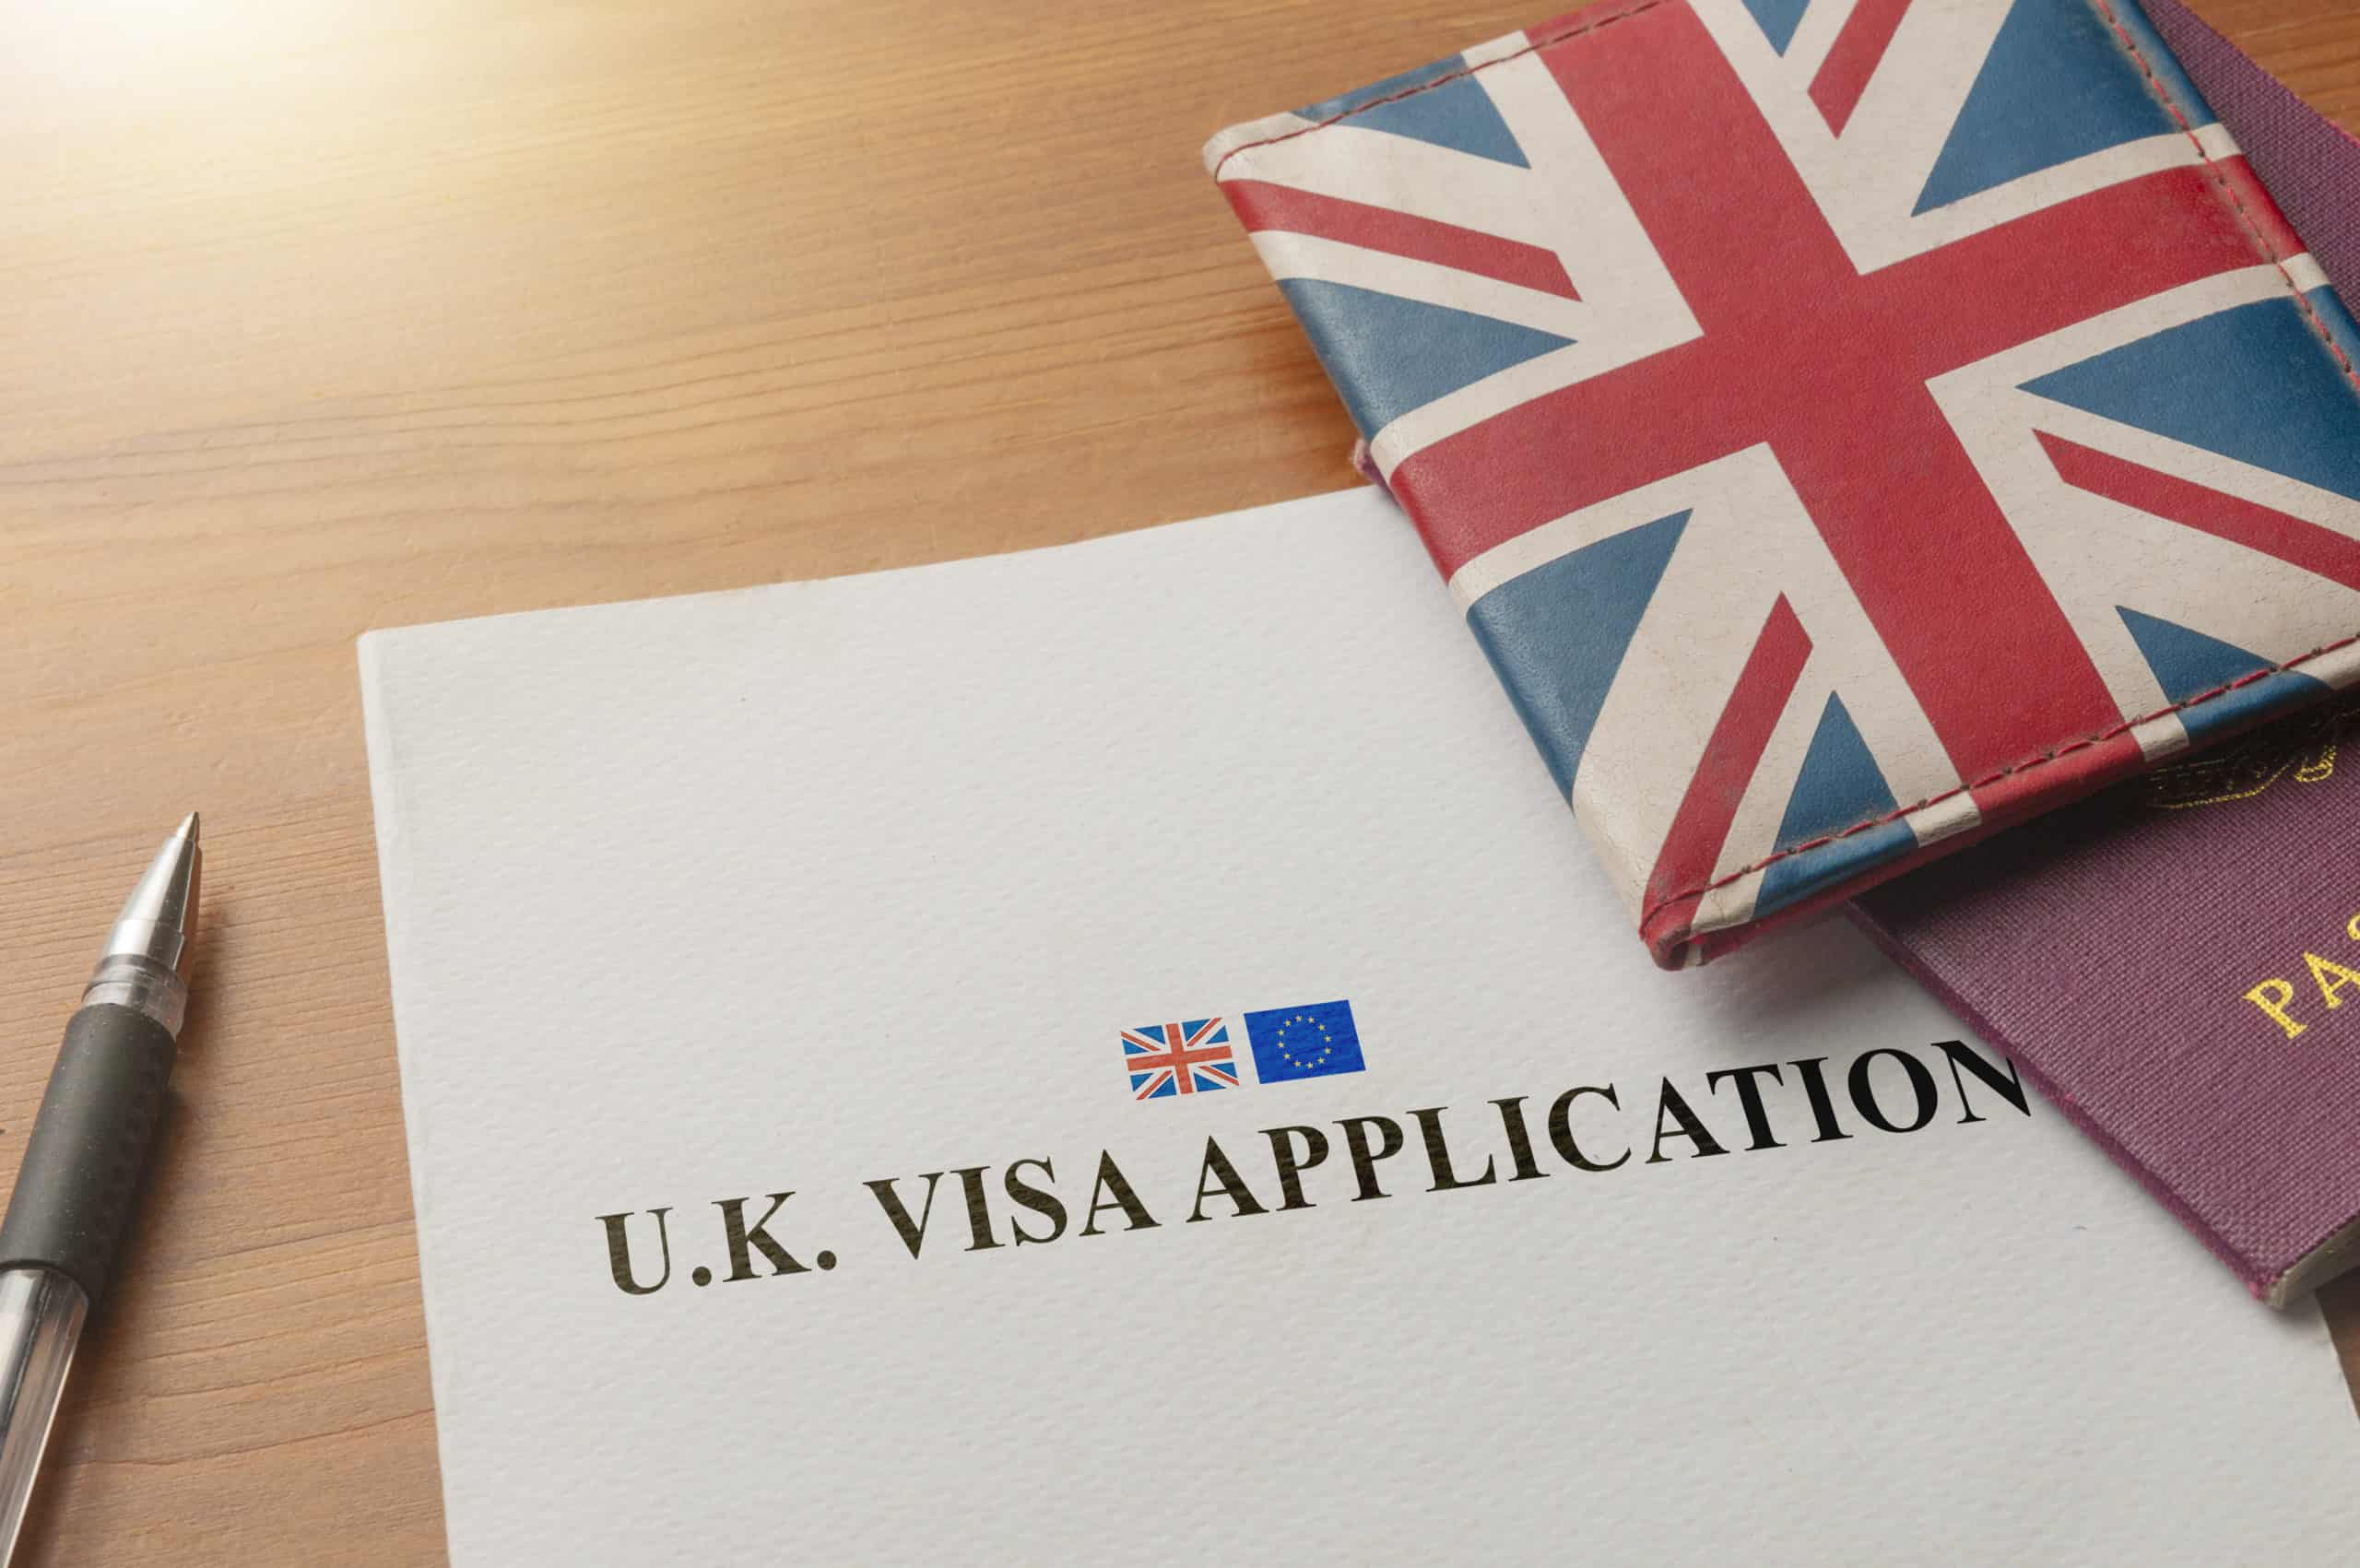 Moving from Dubai to the UK - UK Visa application